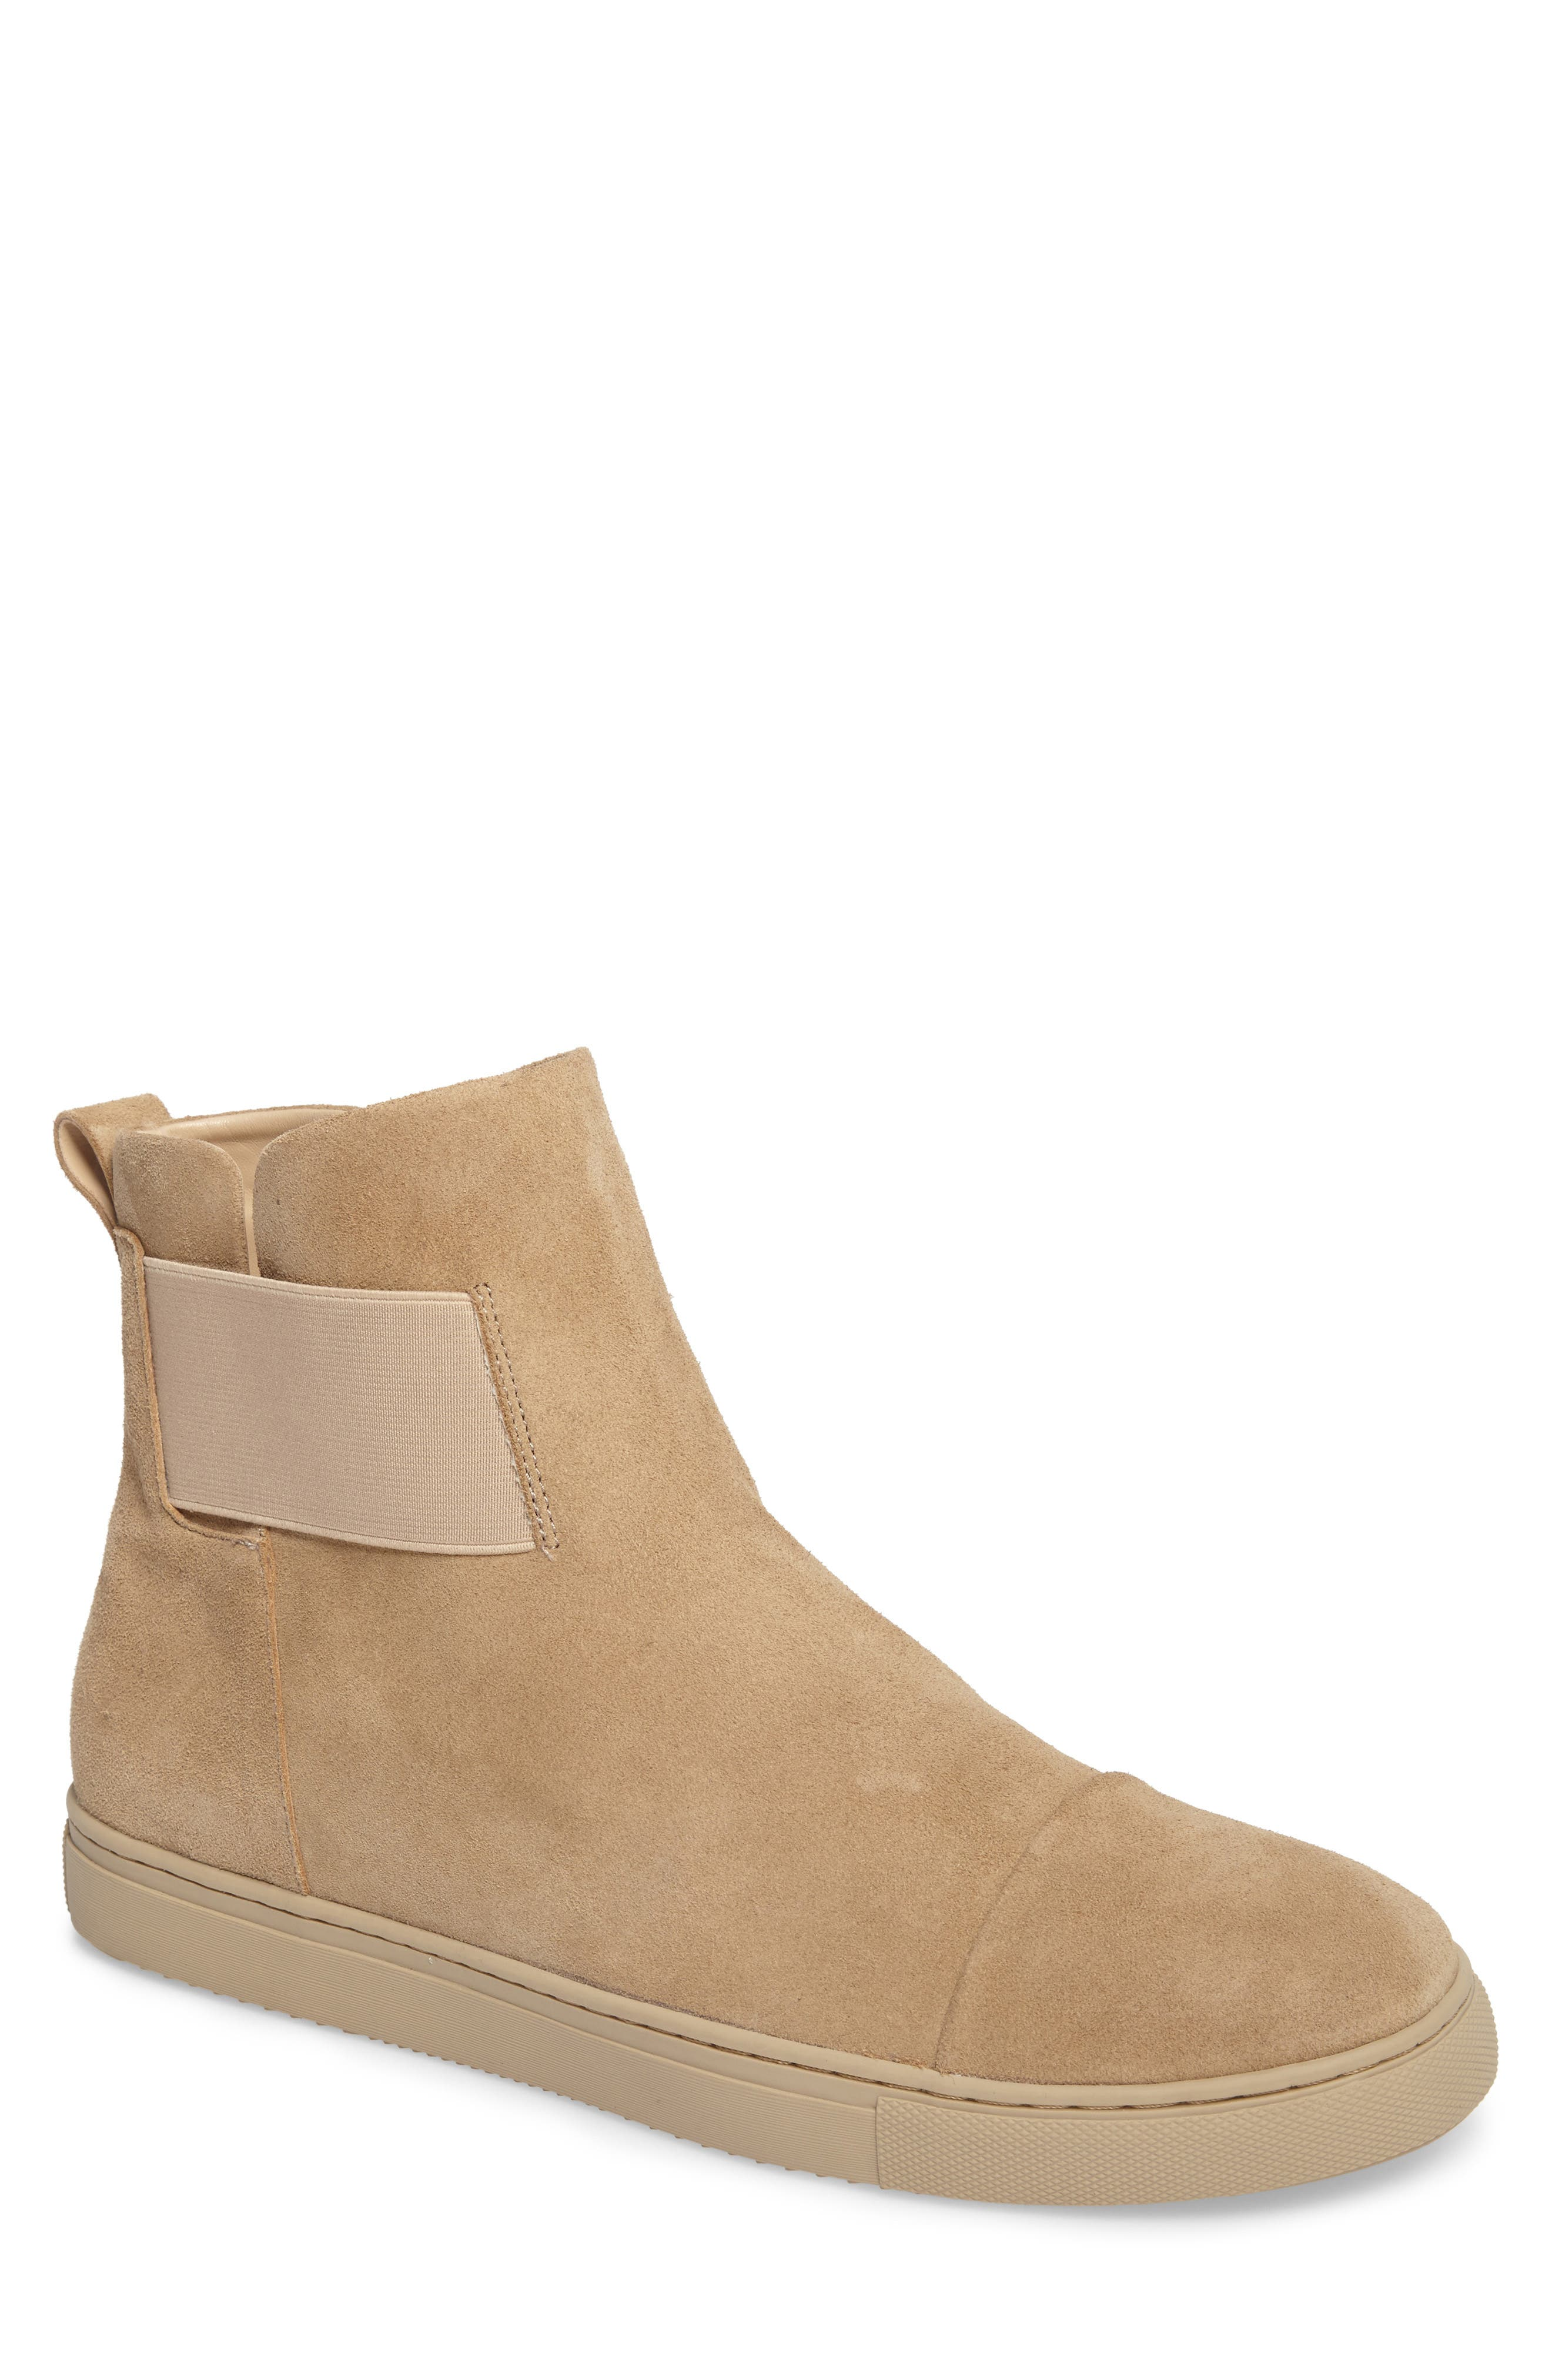 HIP AND BONE Chelsea Boot